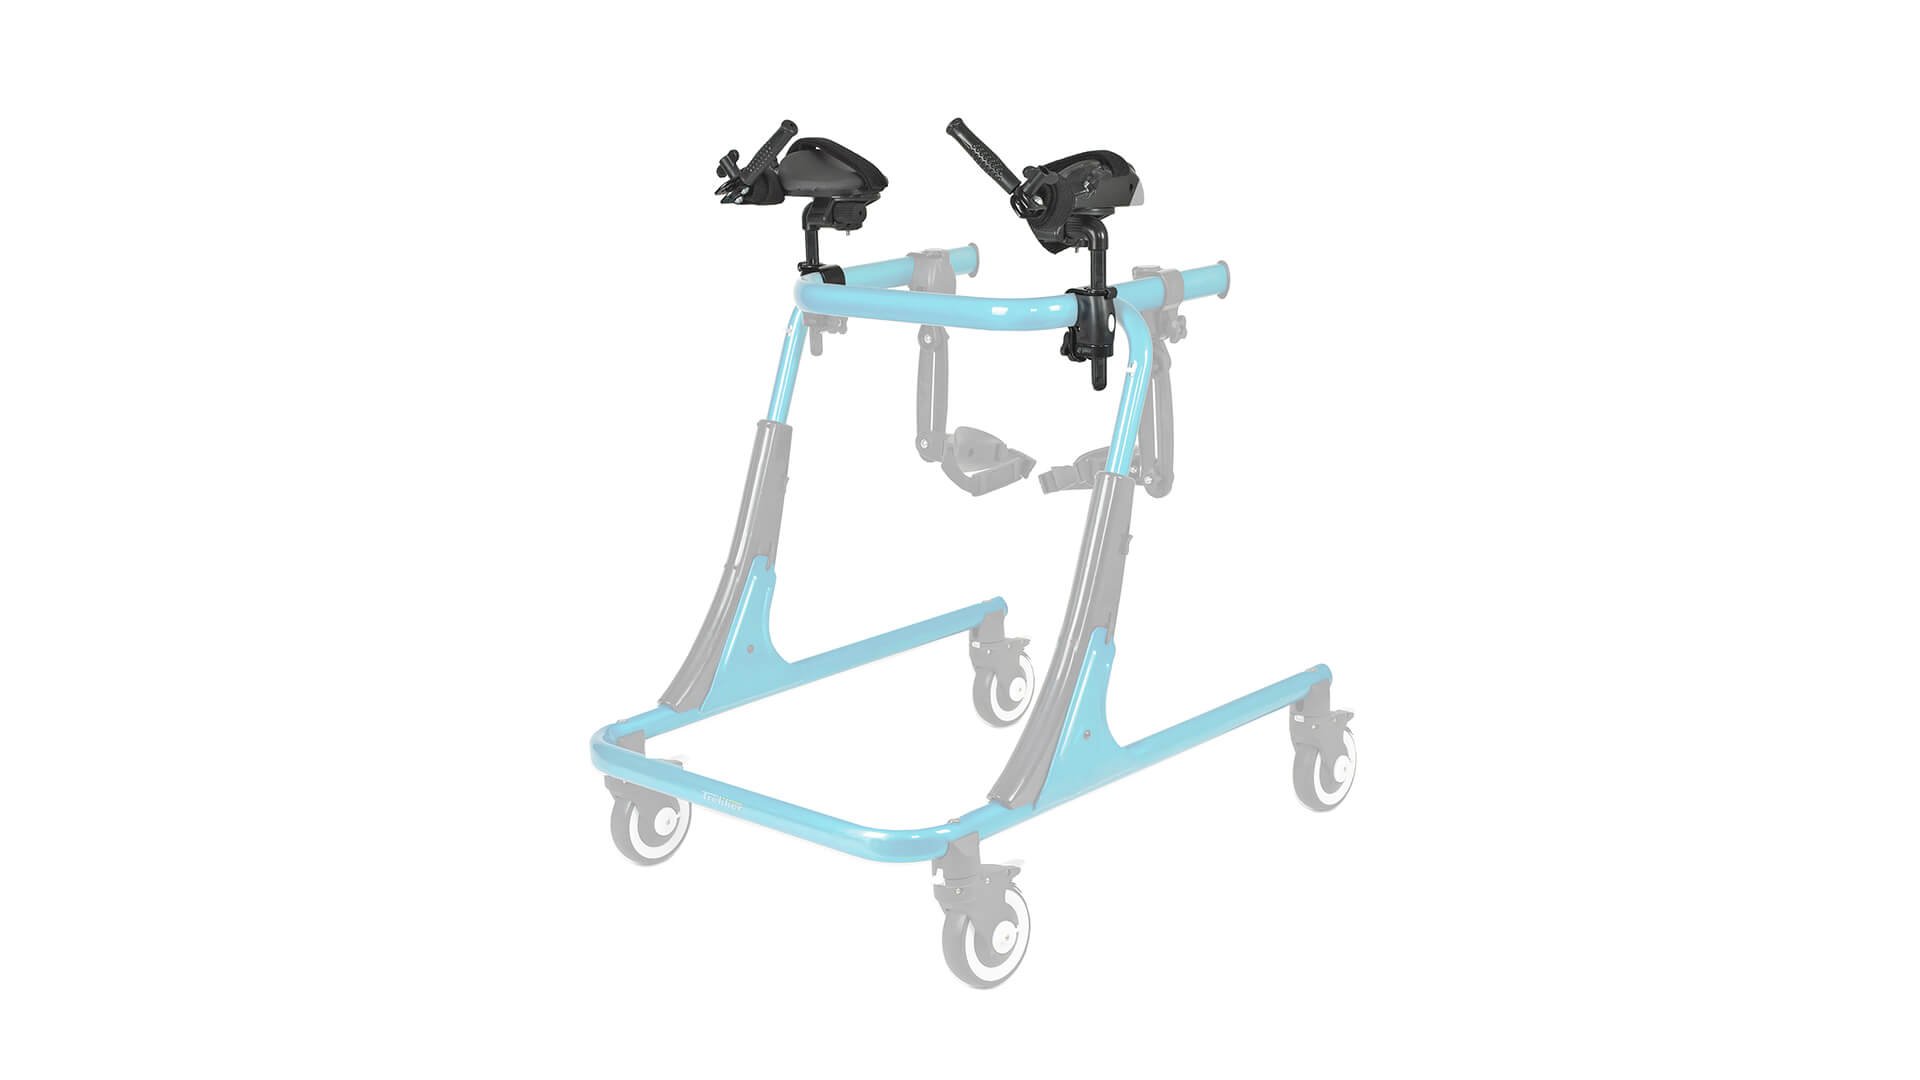 Moxie Gt Gait Trainer Inspired By Drive